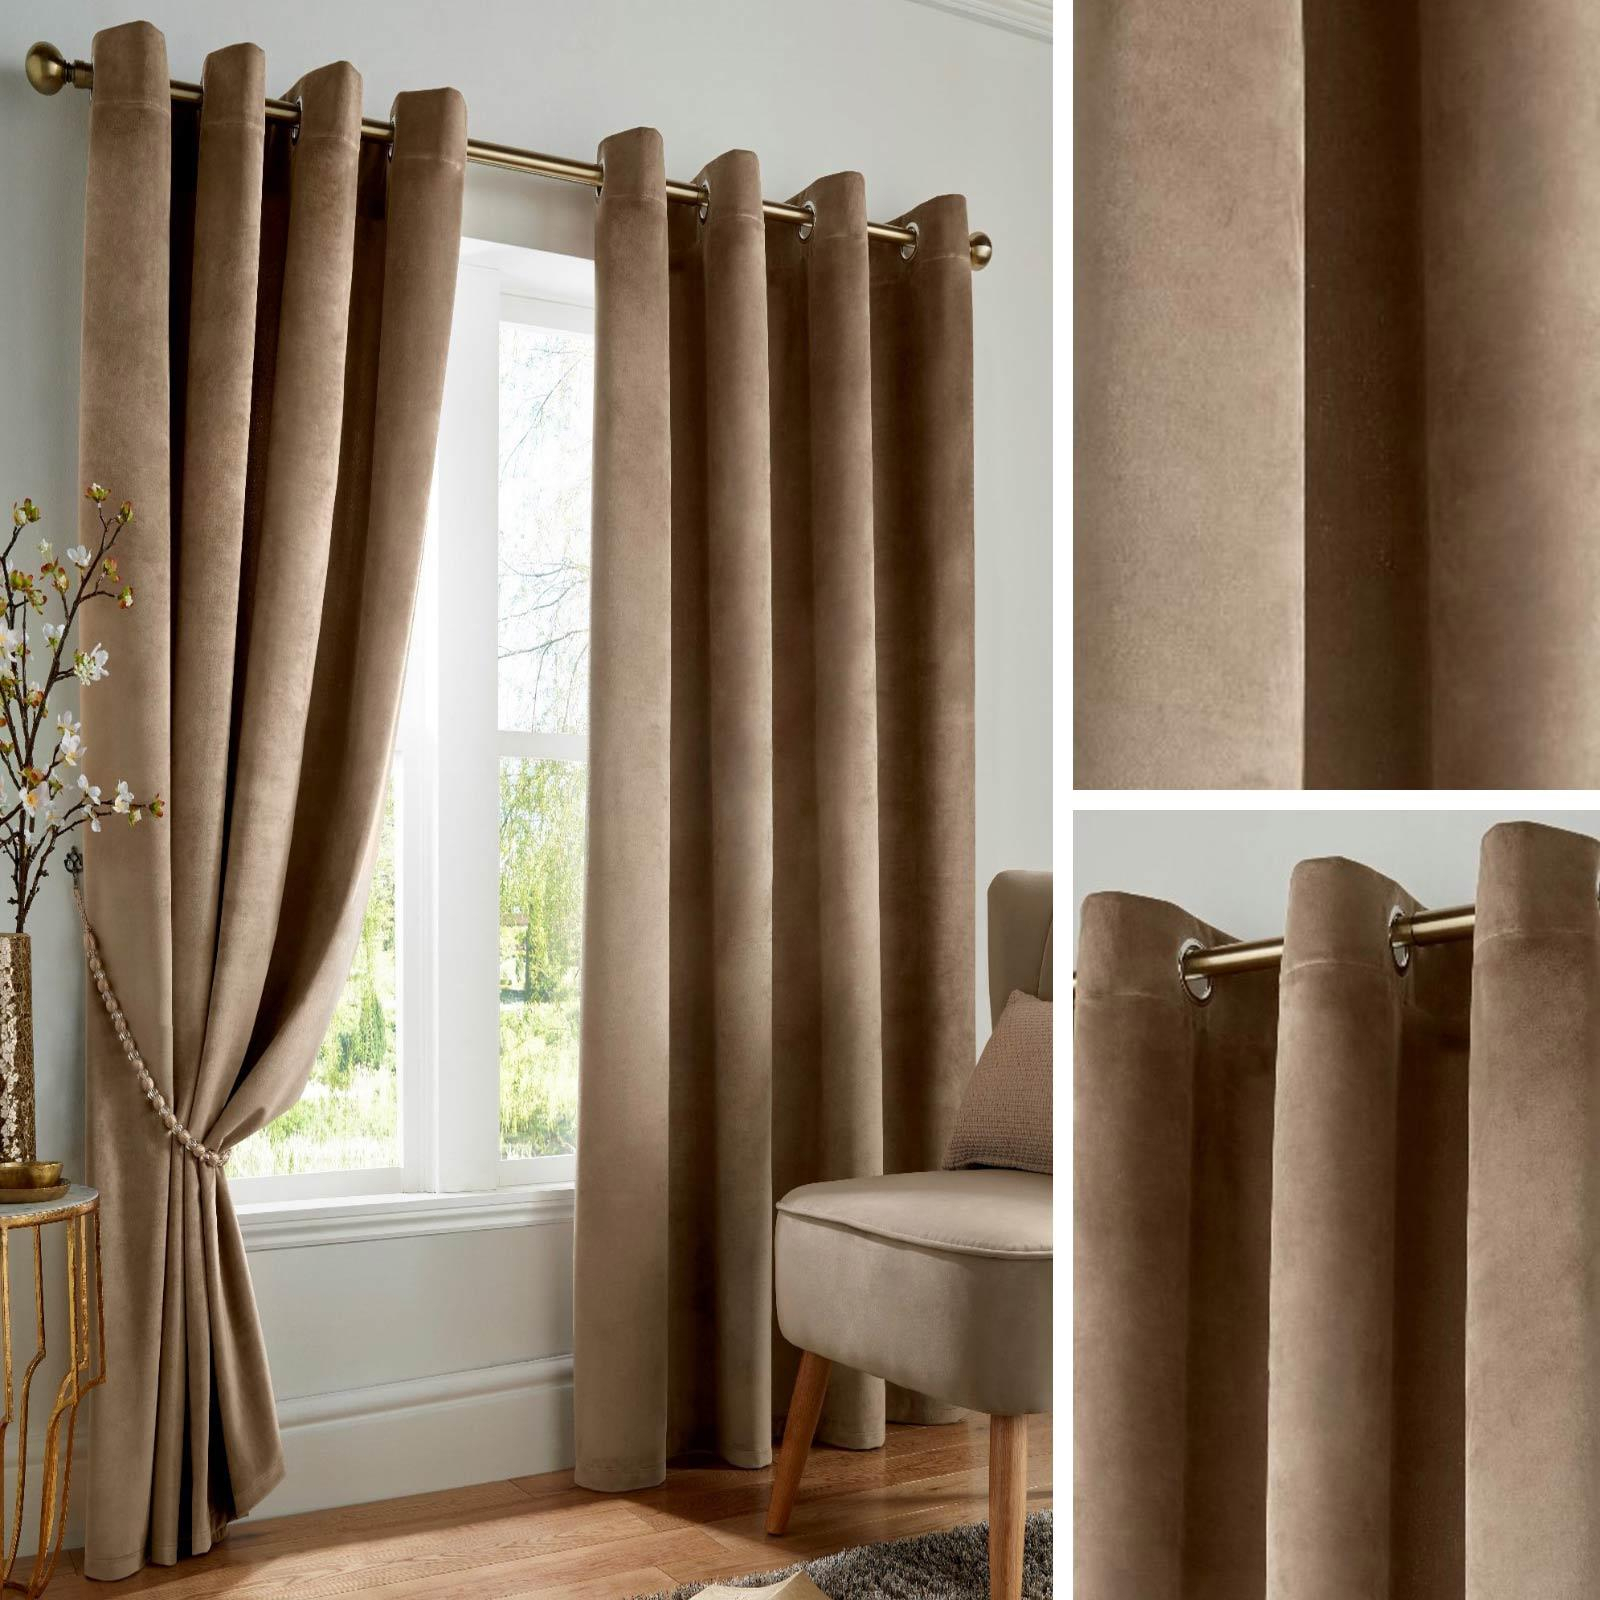 Details About Beige Blackout Curtains Velvet Thermal Eyelet Ready Made Ring Top Curtain Pairs For Glasgow Curtain Tier Sets (View 14 of 20)